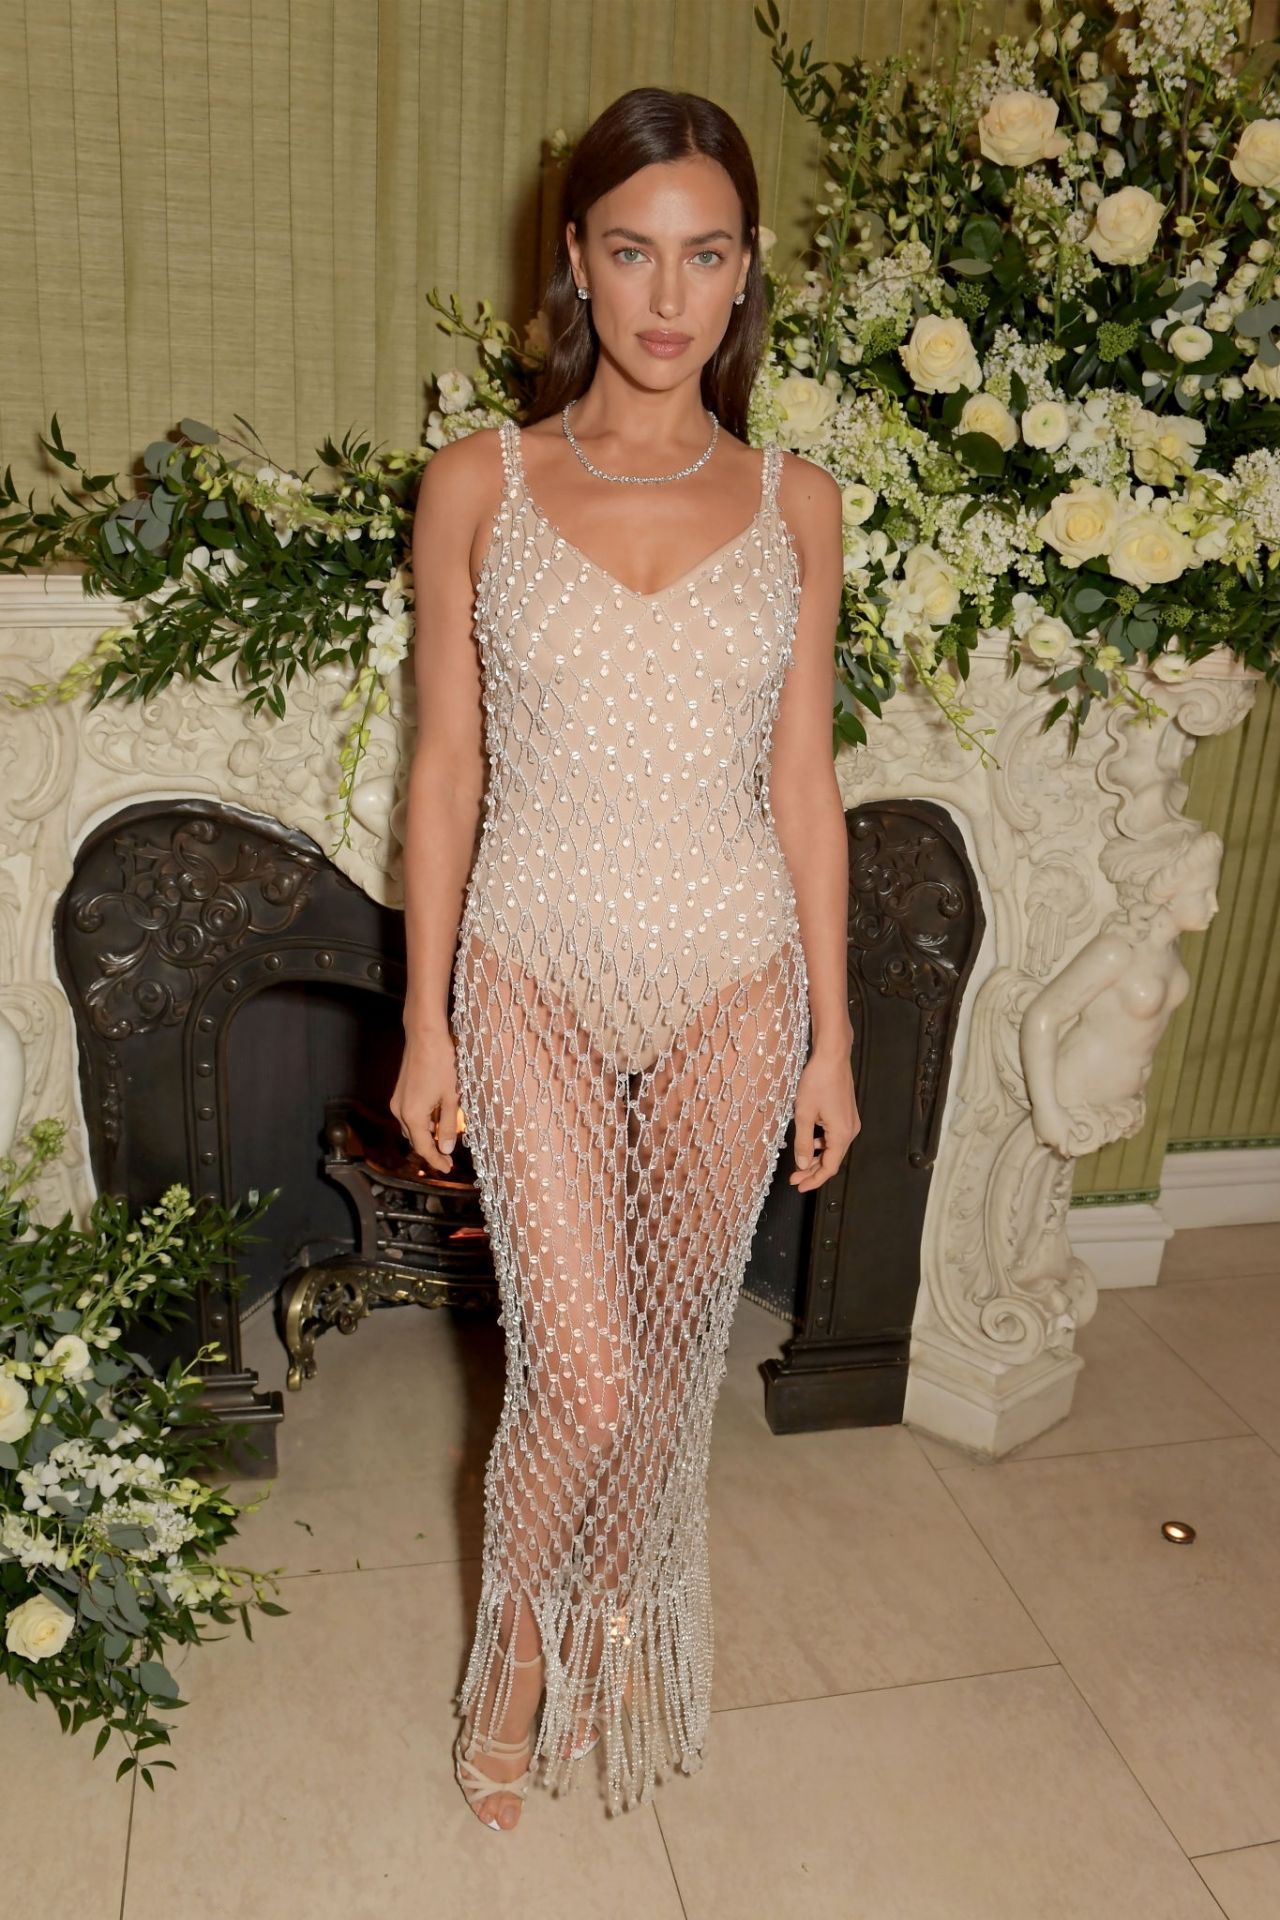 irina-shayk-in-burberry-bafta-vogue-x-tiffany-fashion-and-film-afterparty-in-london